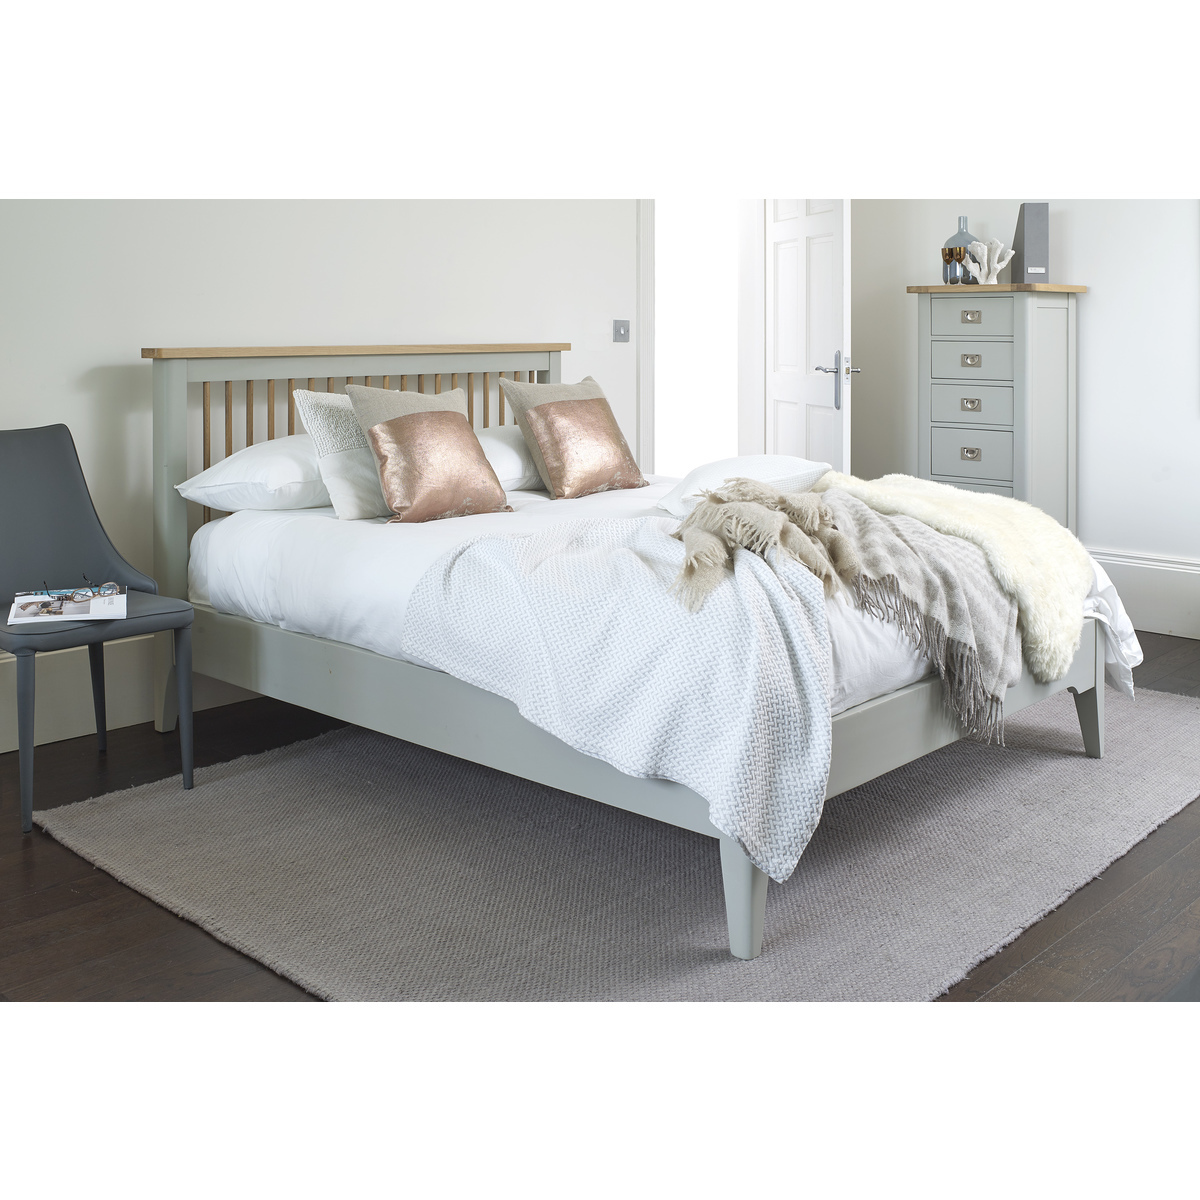 Bordeaux Painted Bed Frame In 3 Sizes Costco Uk